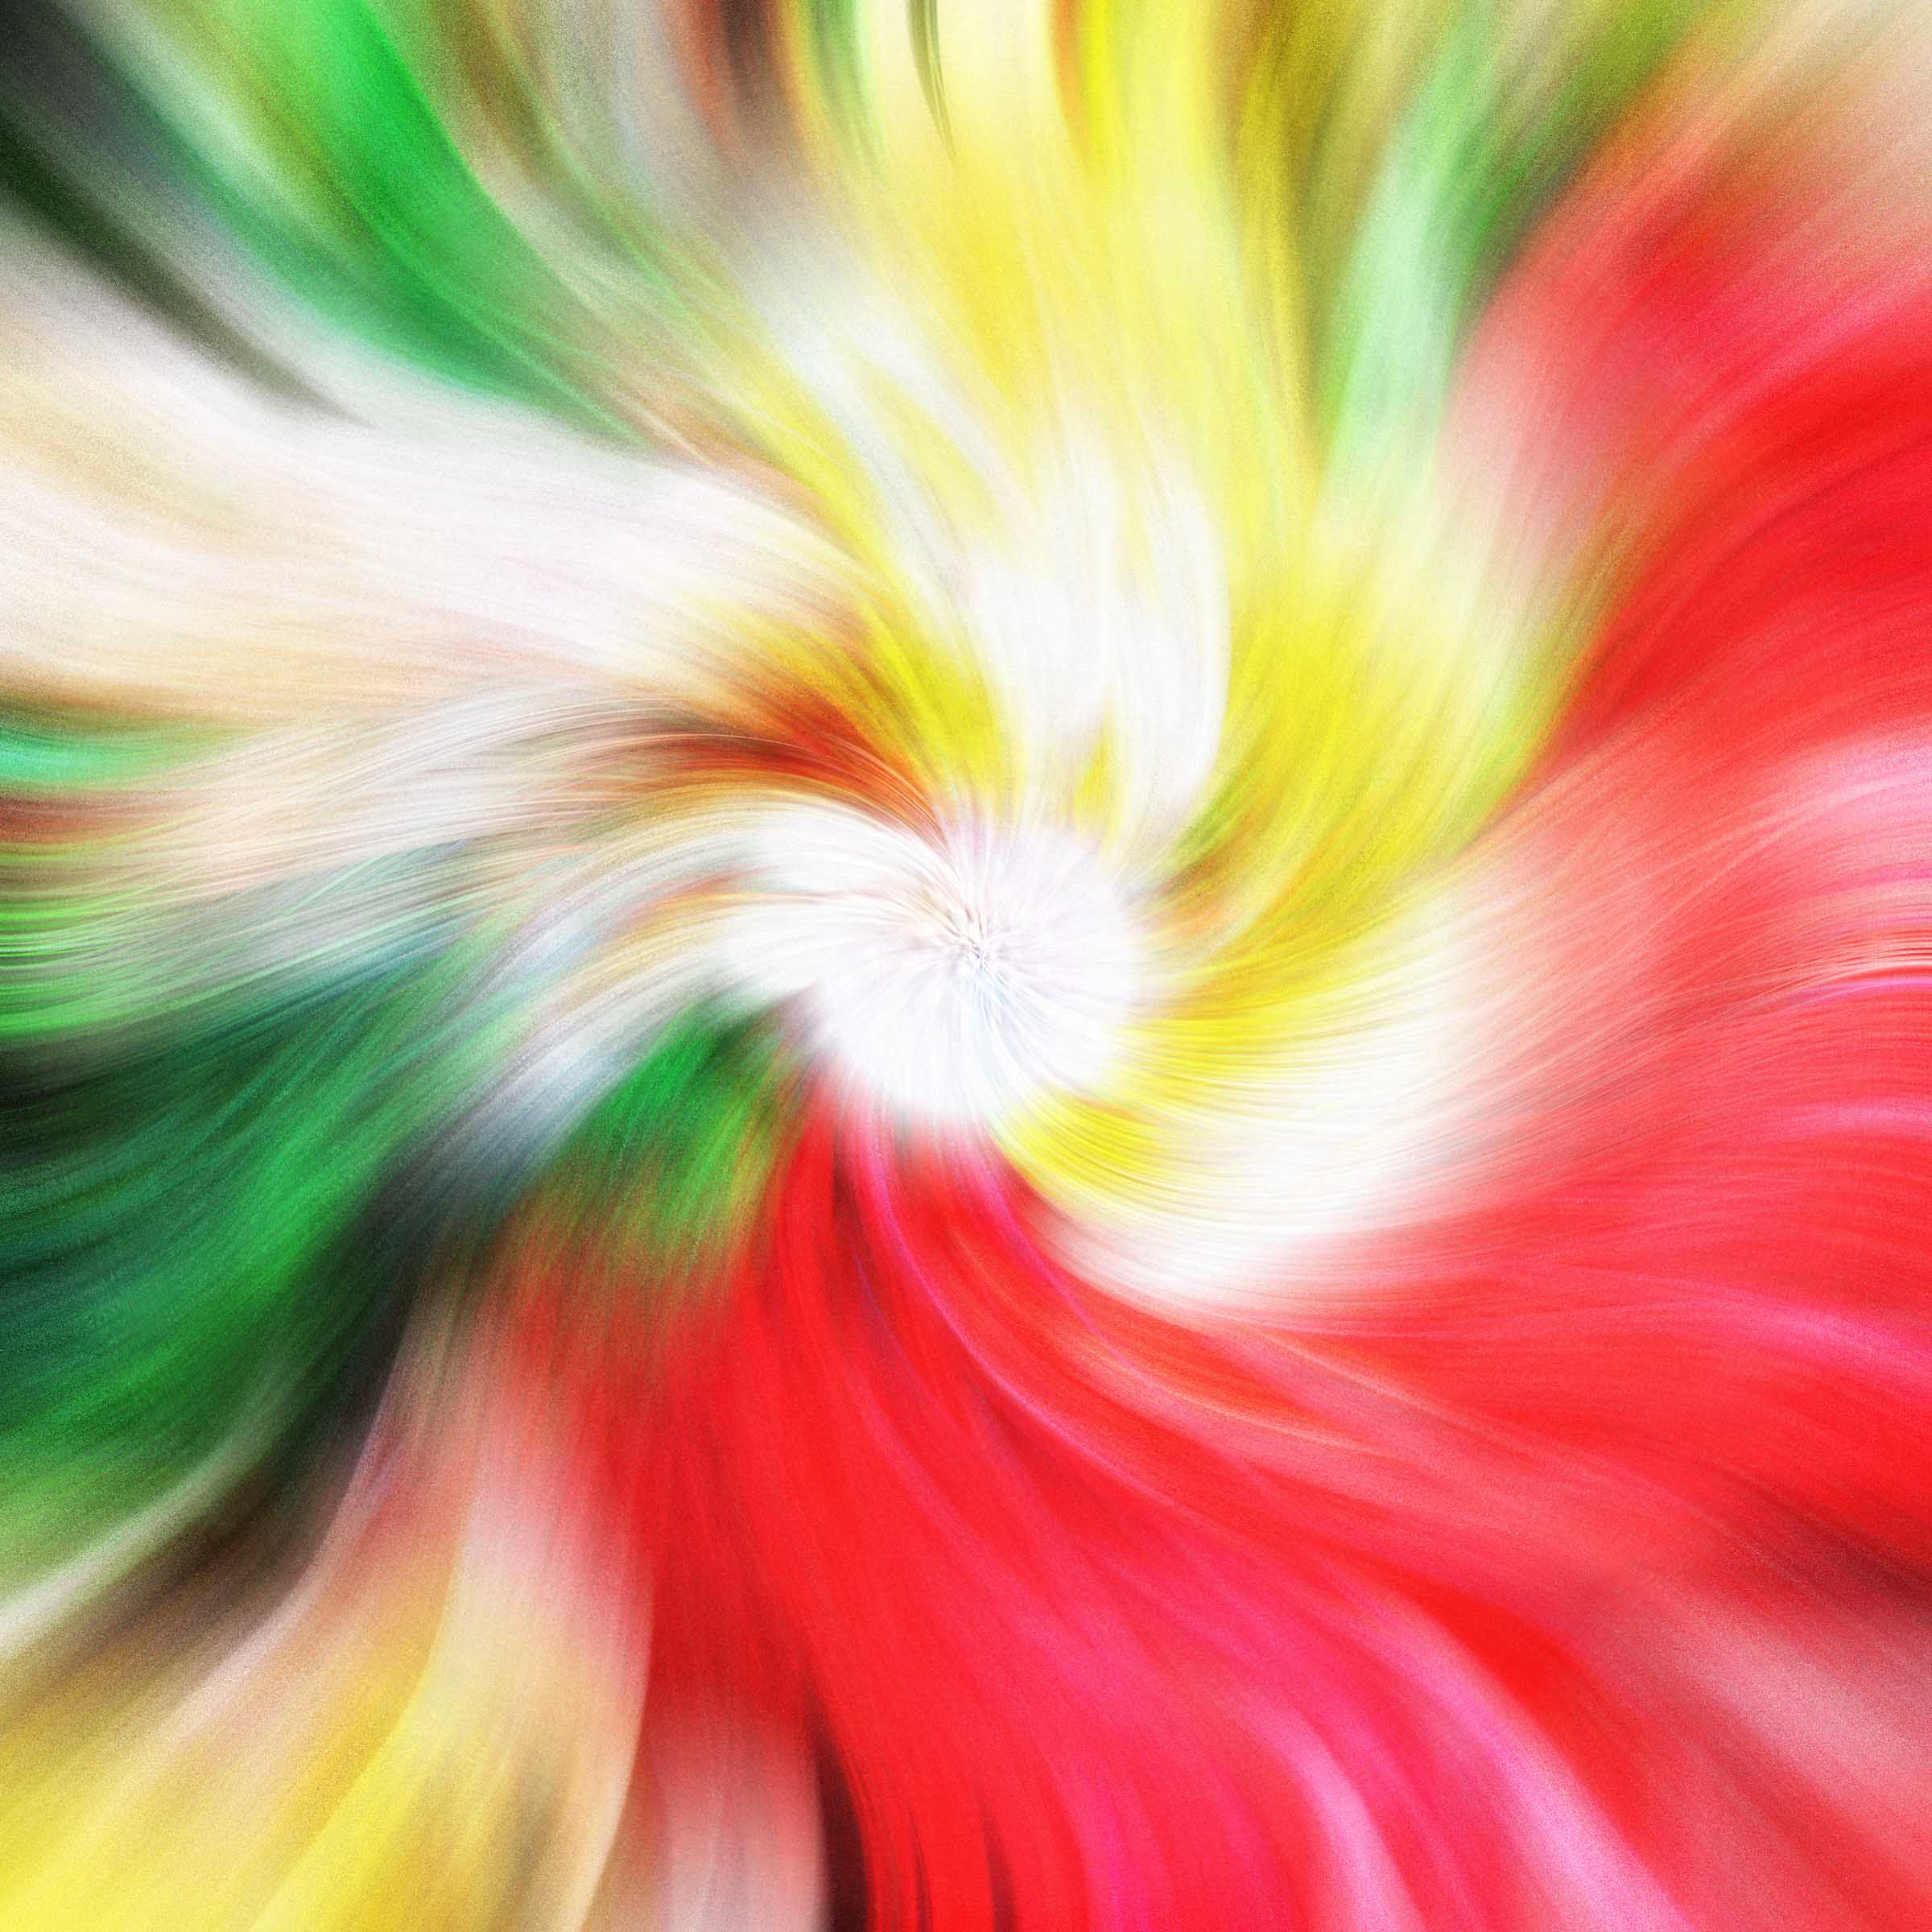 Green and red twirl effect image